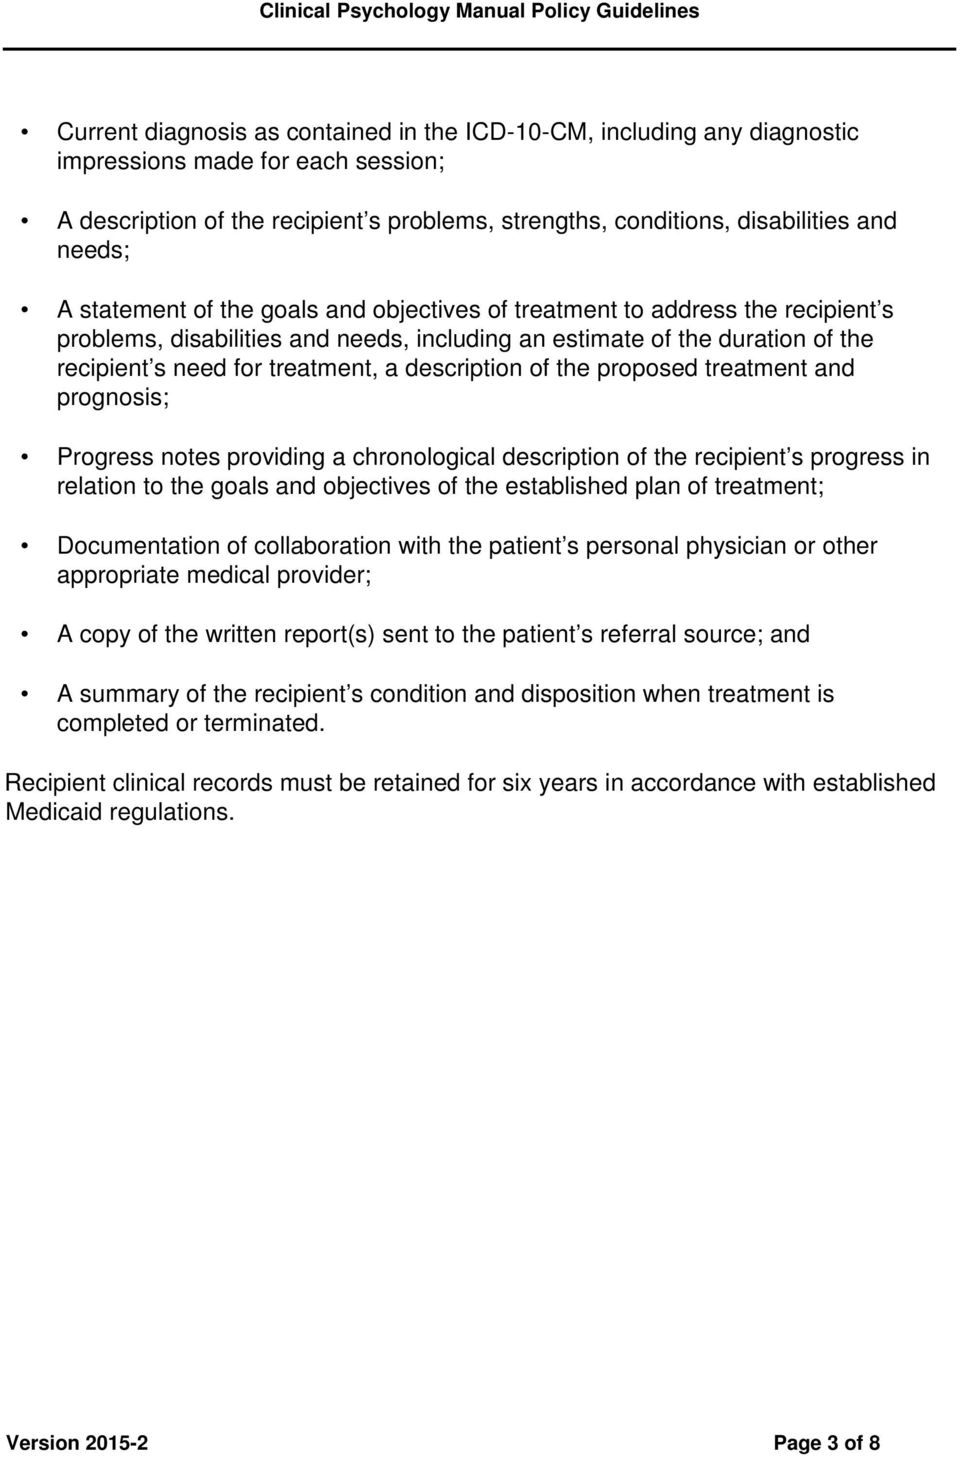 description of the proposed treatment and prognosis; Progress notes providing a chronological description of the recipient s progress in relation to the goals and objectives of the established plan